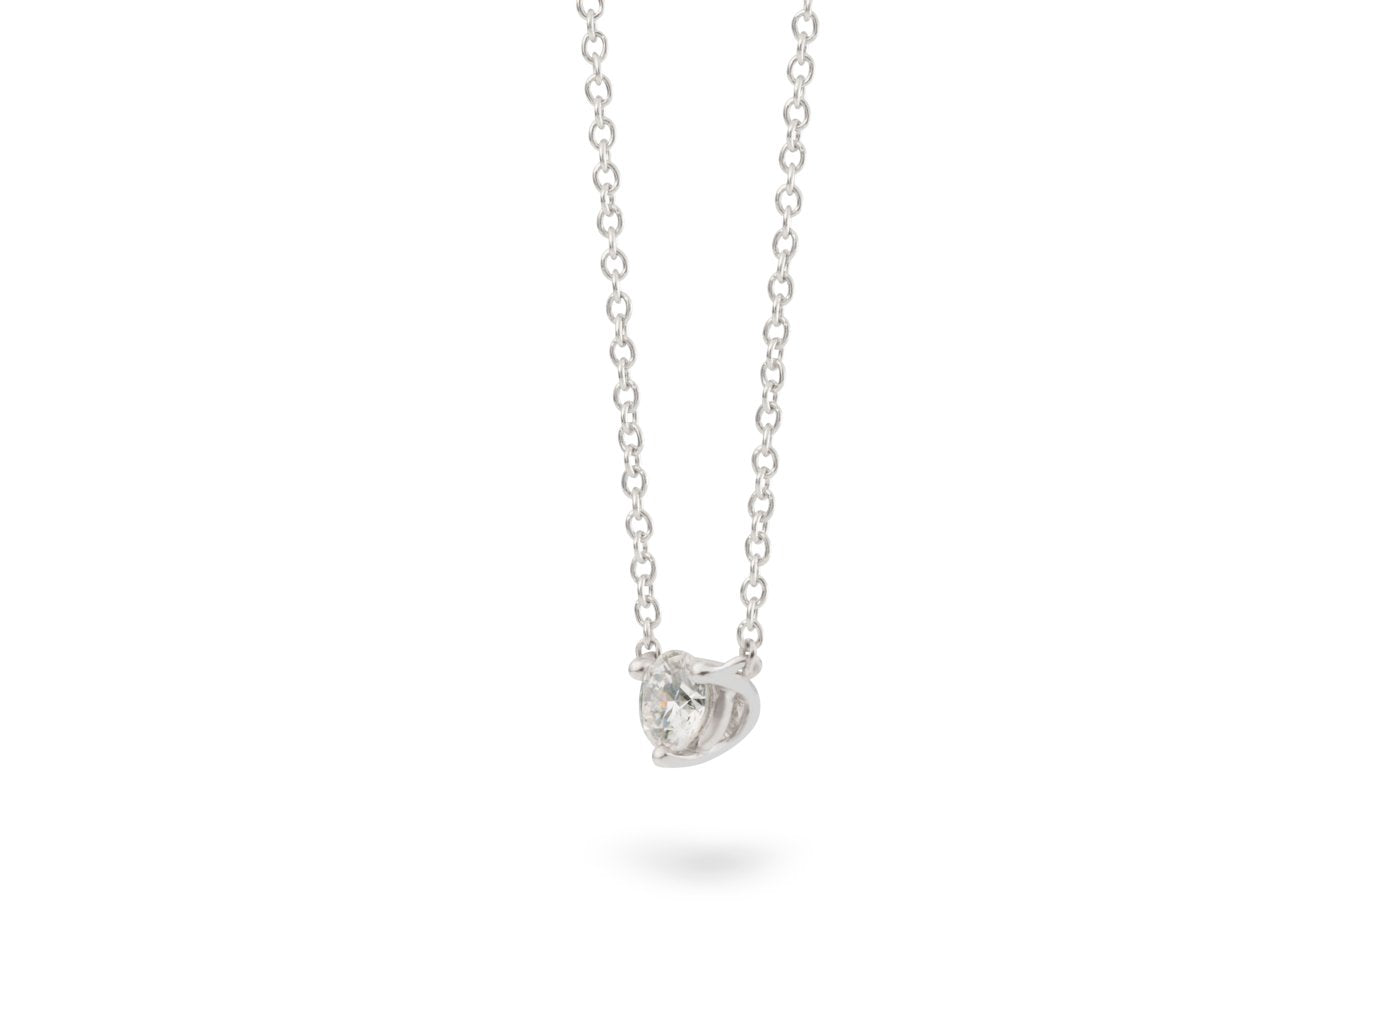 Side view of Solitaire 1/4 carat pendant with white diamond